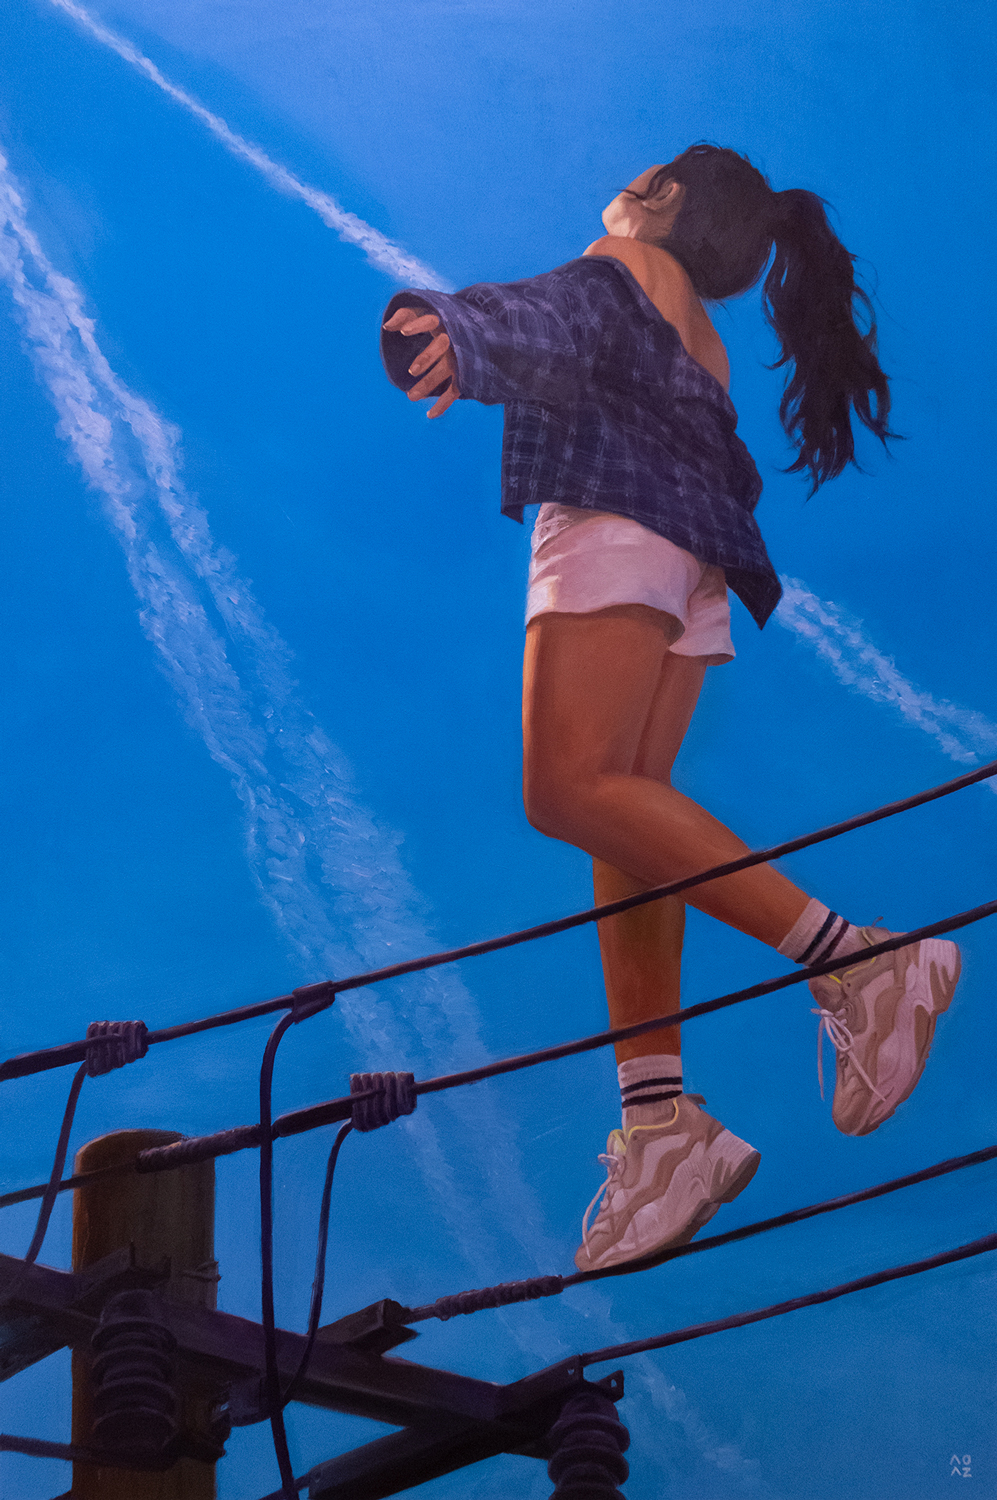 A girl tiptoeing on a cable from a electric pole